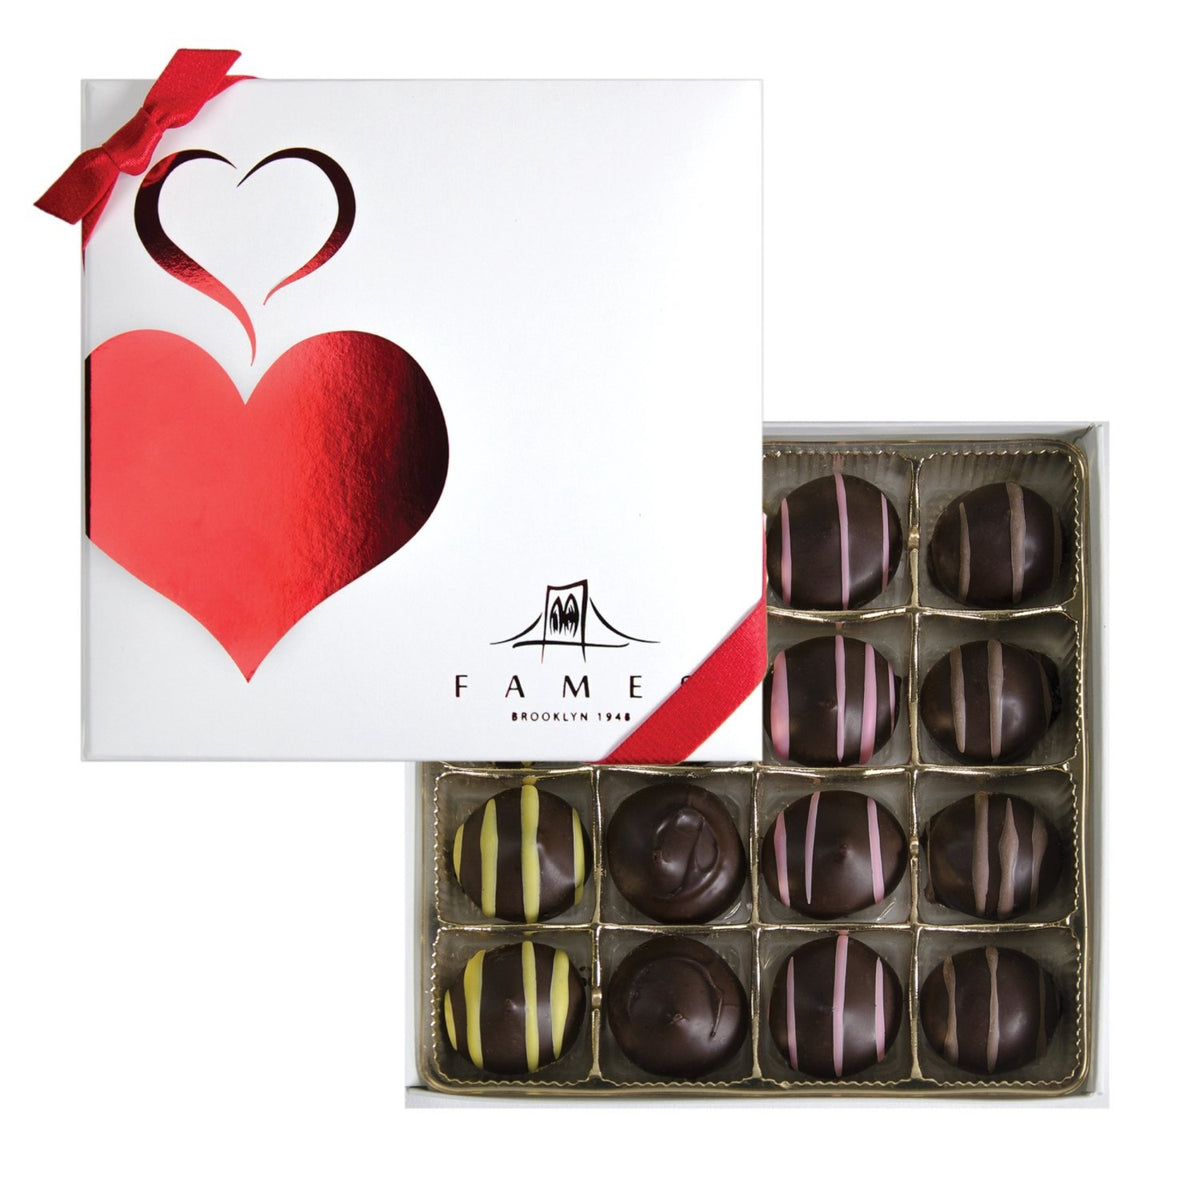 Small Chocolate Gift Box -16 Count, Kosher, Dairy Free.